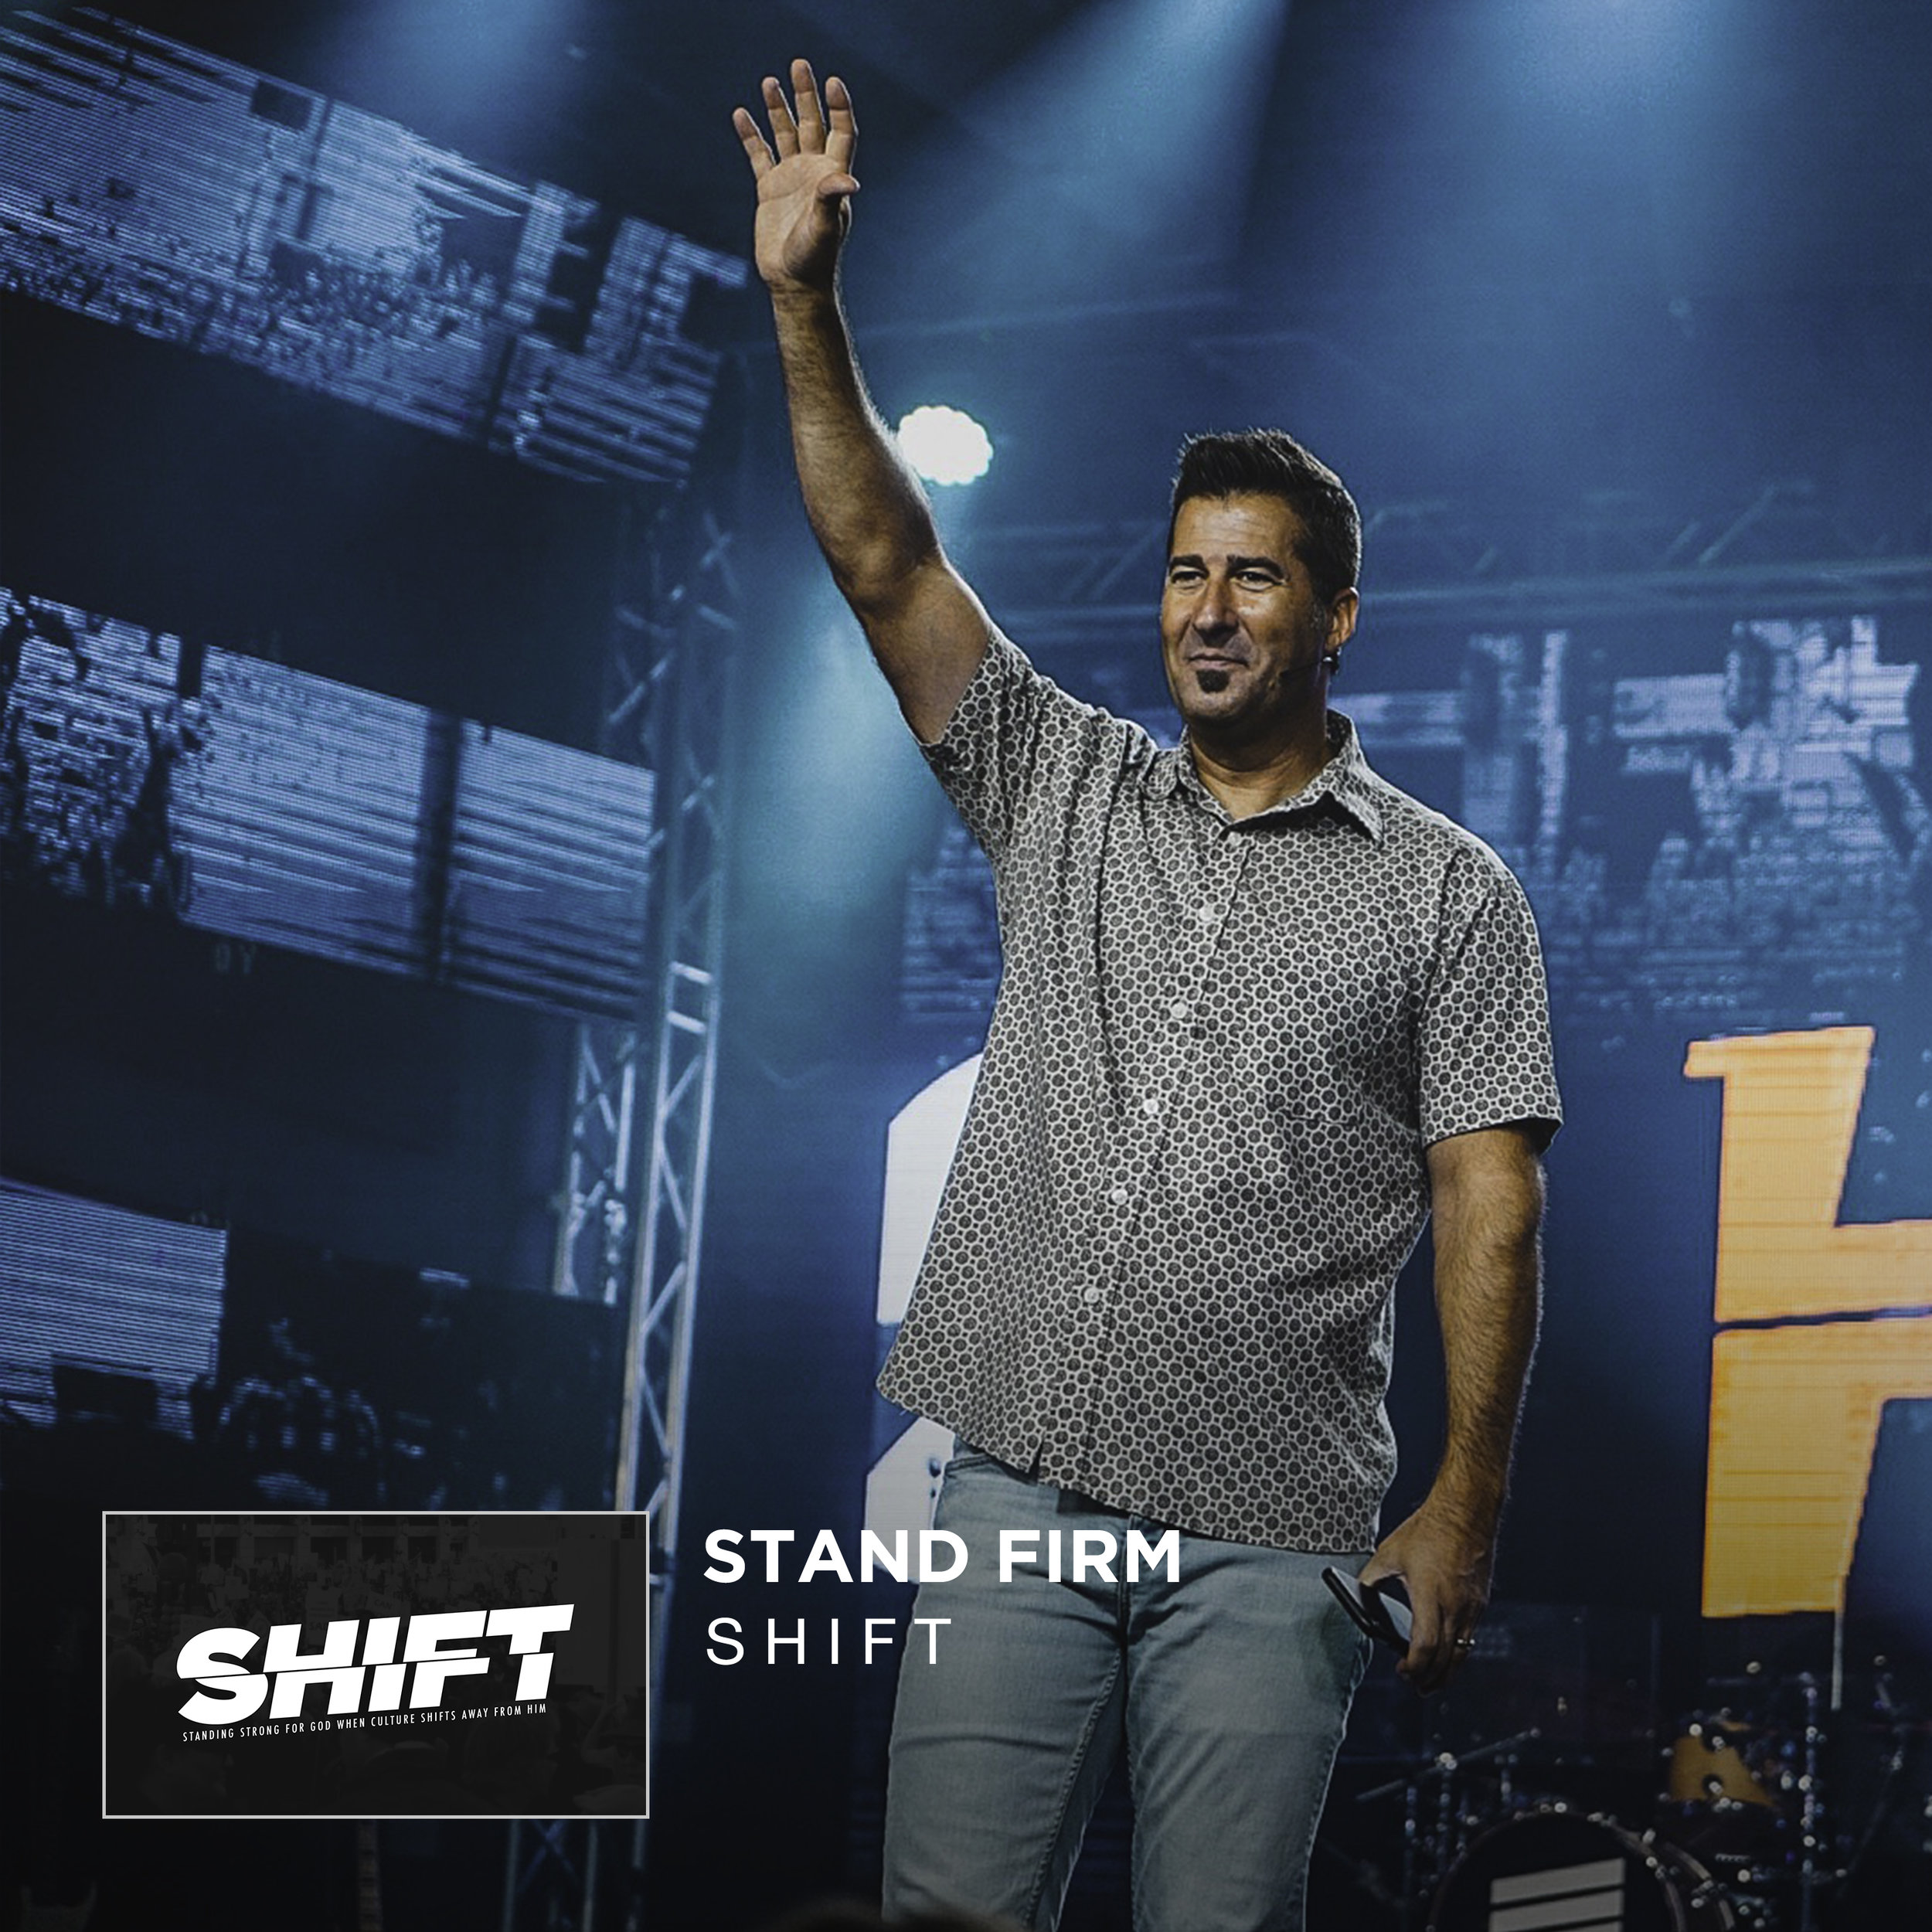 Shift - Stand Firm - Jared Ming Web.jpg